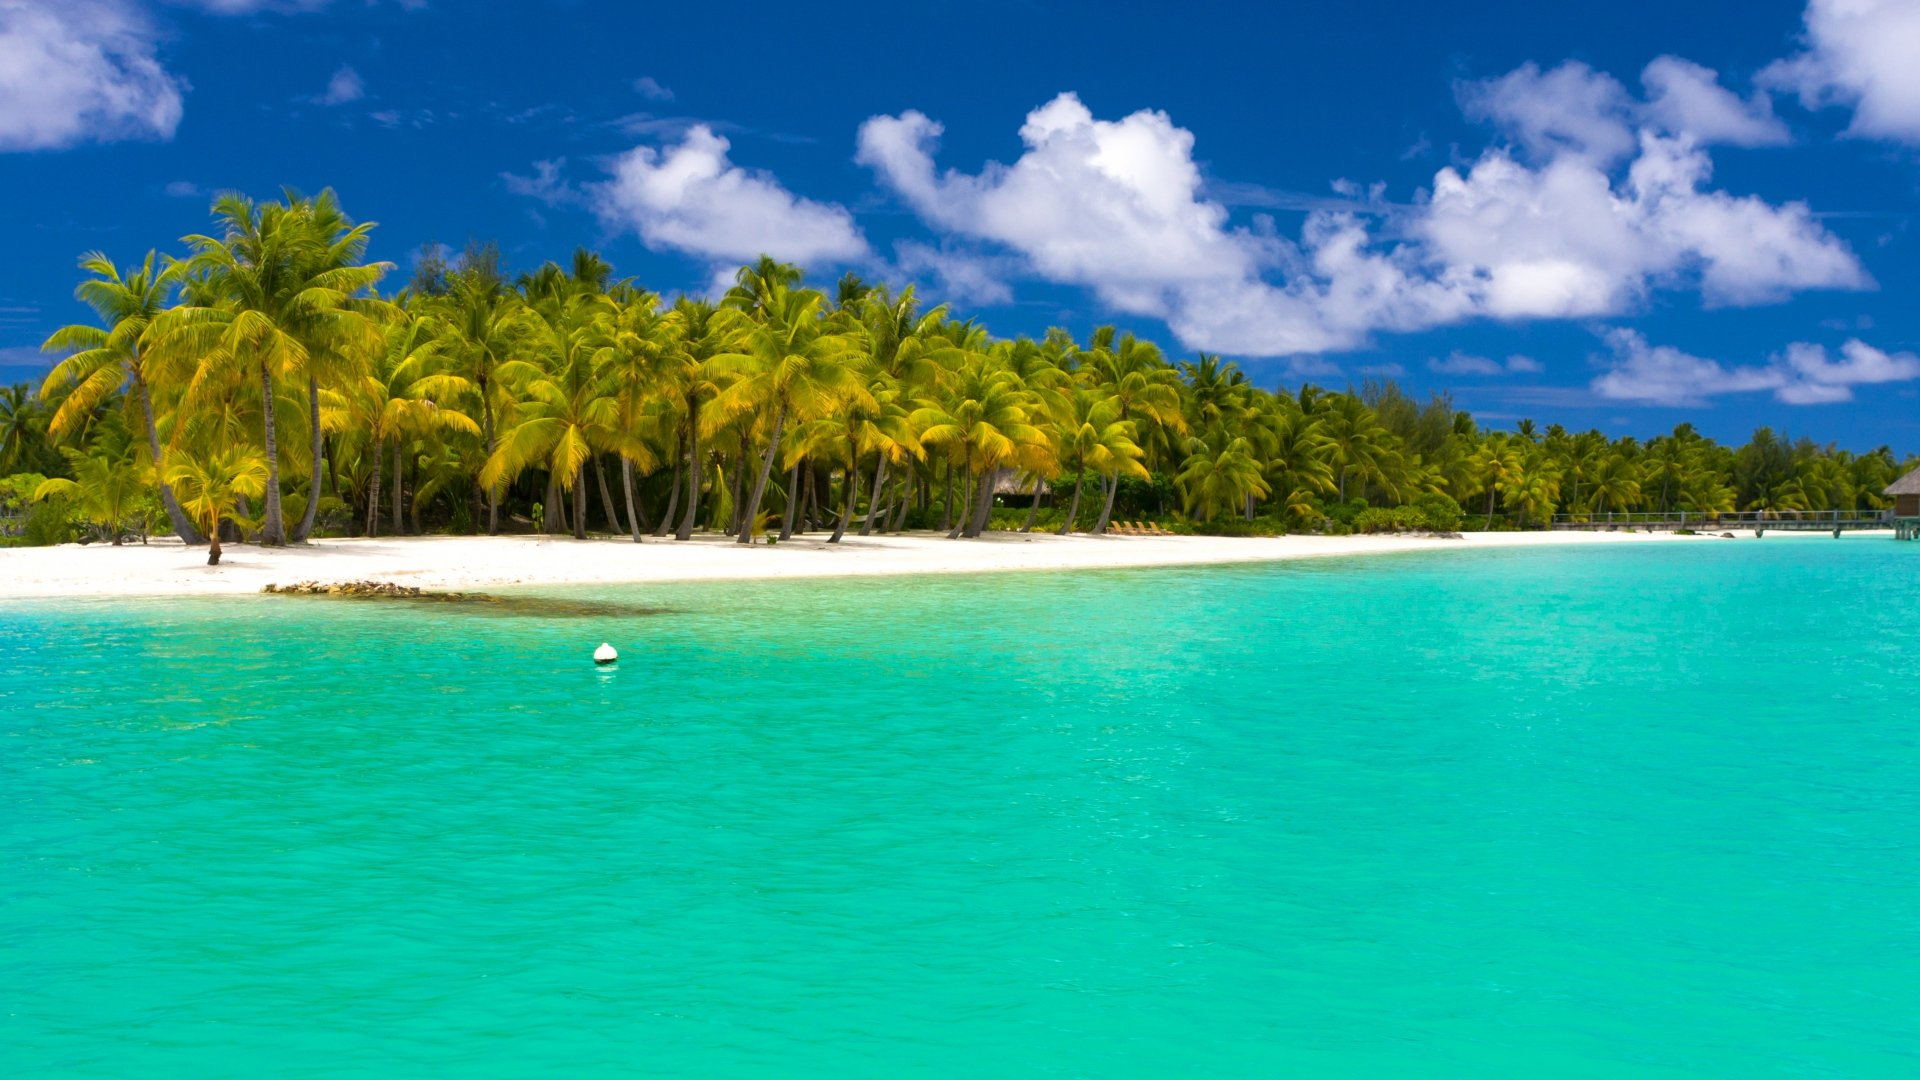 Maldives Beach Hd Wallpaper: Maldives Wallpapers, Photos And Desktop Backgrounds Up To